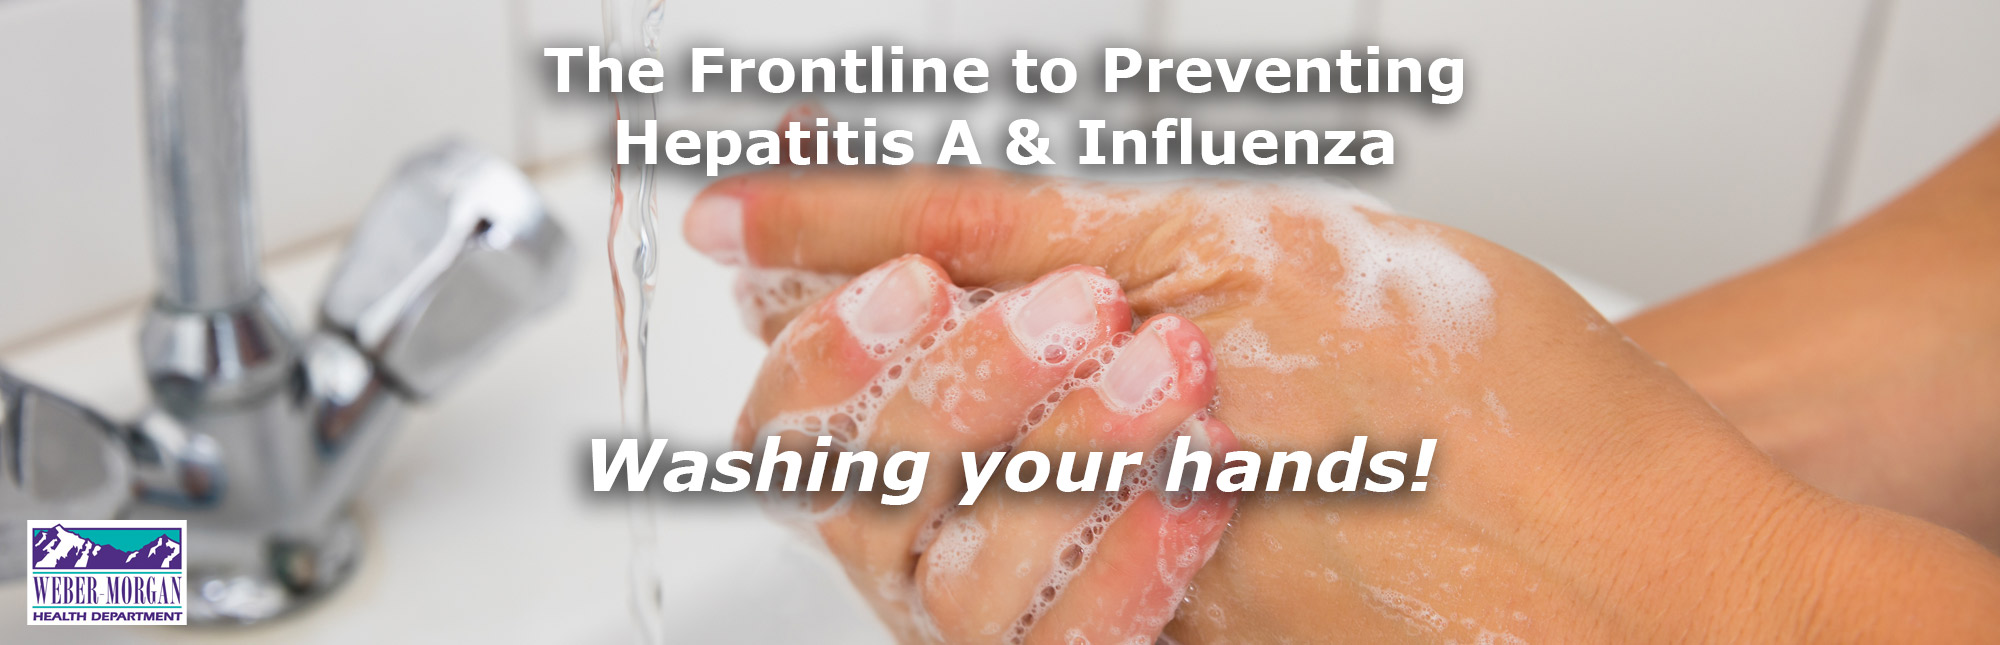 Washing Your Hands prevents Hepatitis A & Influenza image